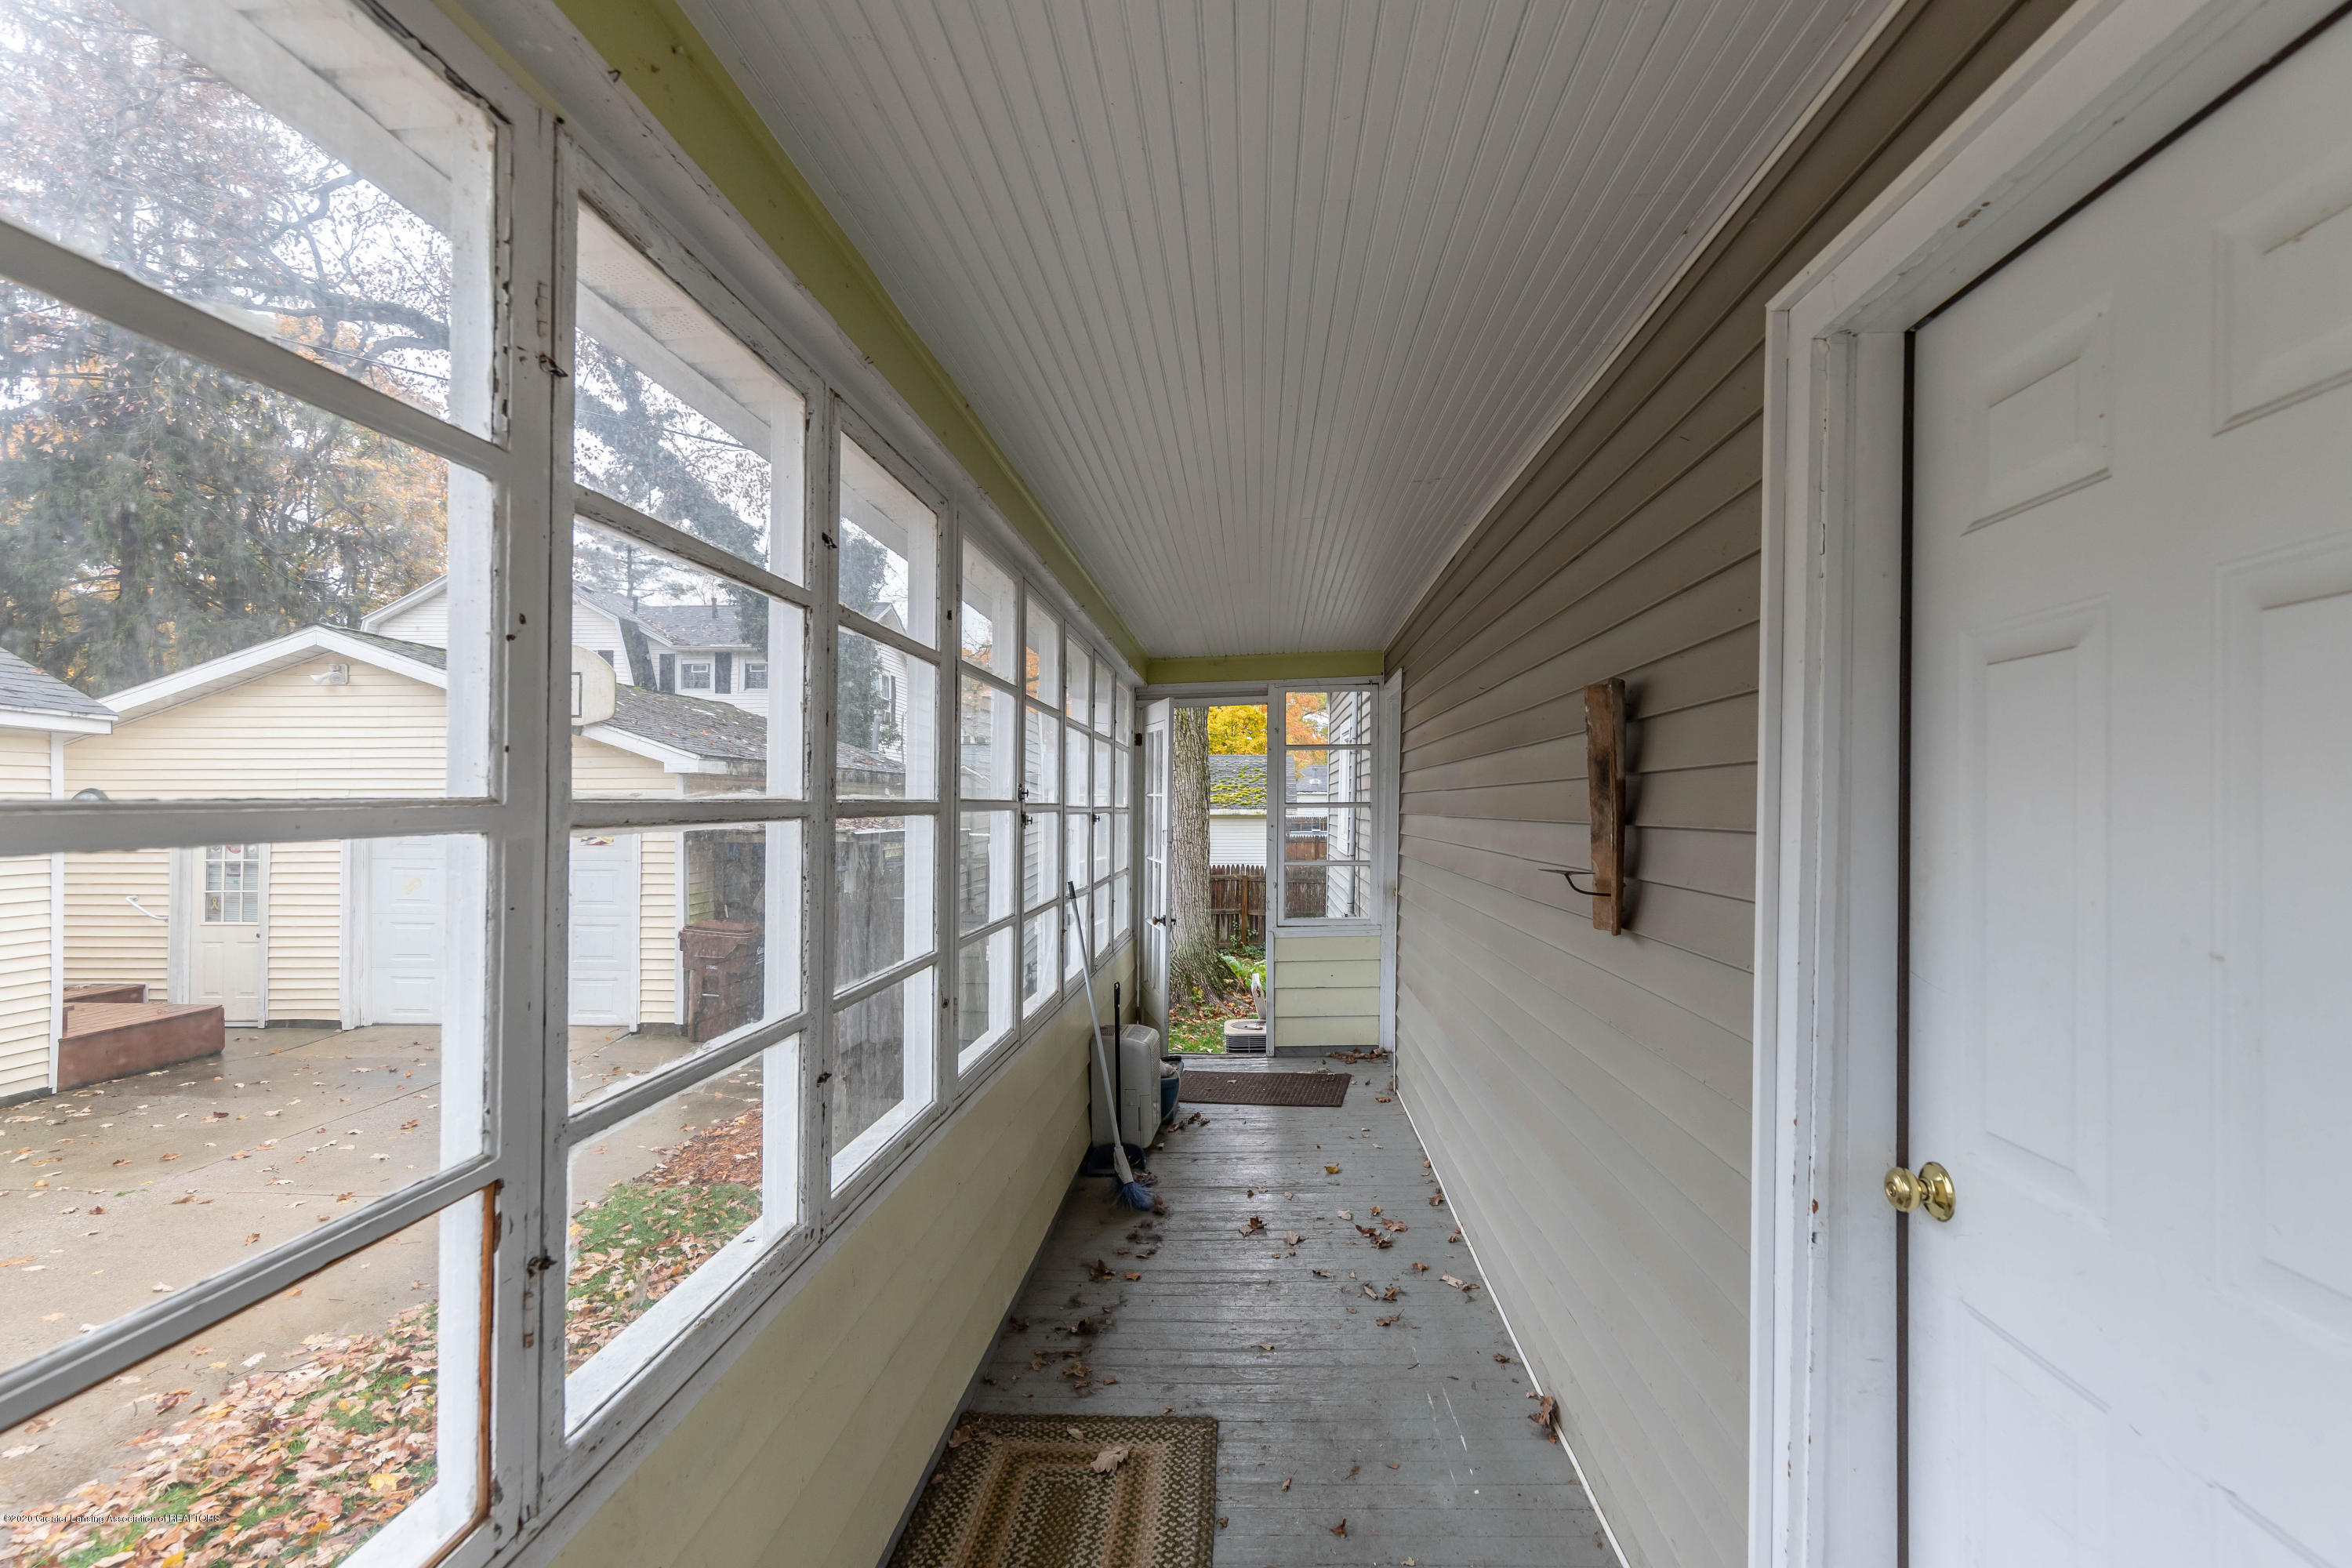 214 S East St - eaststporch2 (1 of 1) - 3